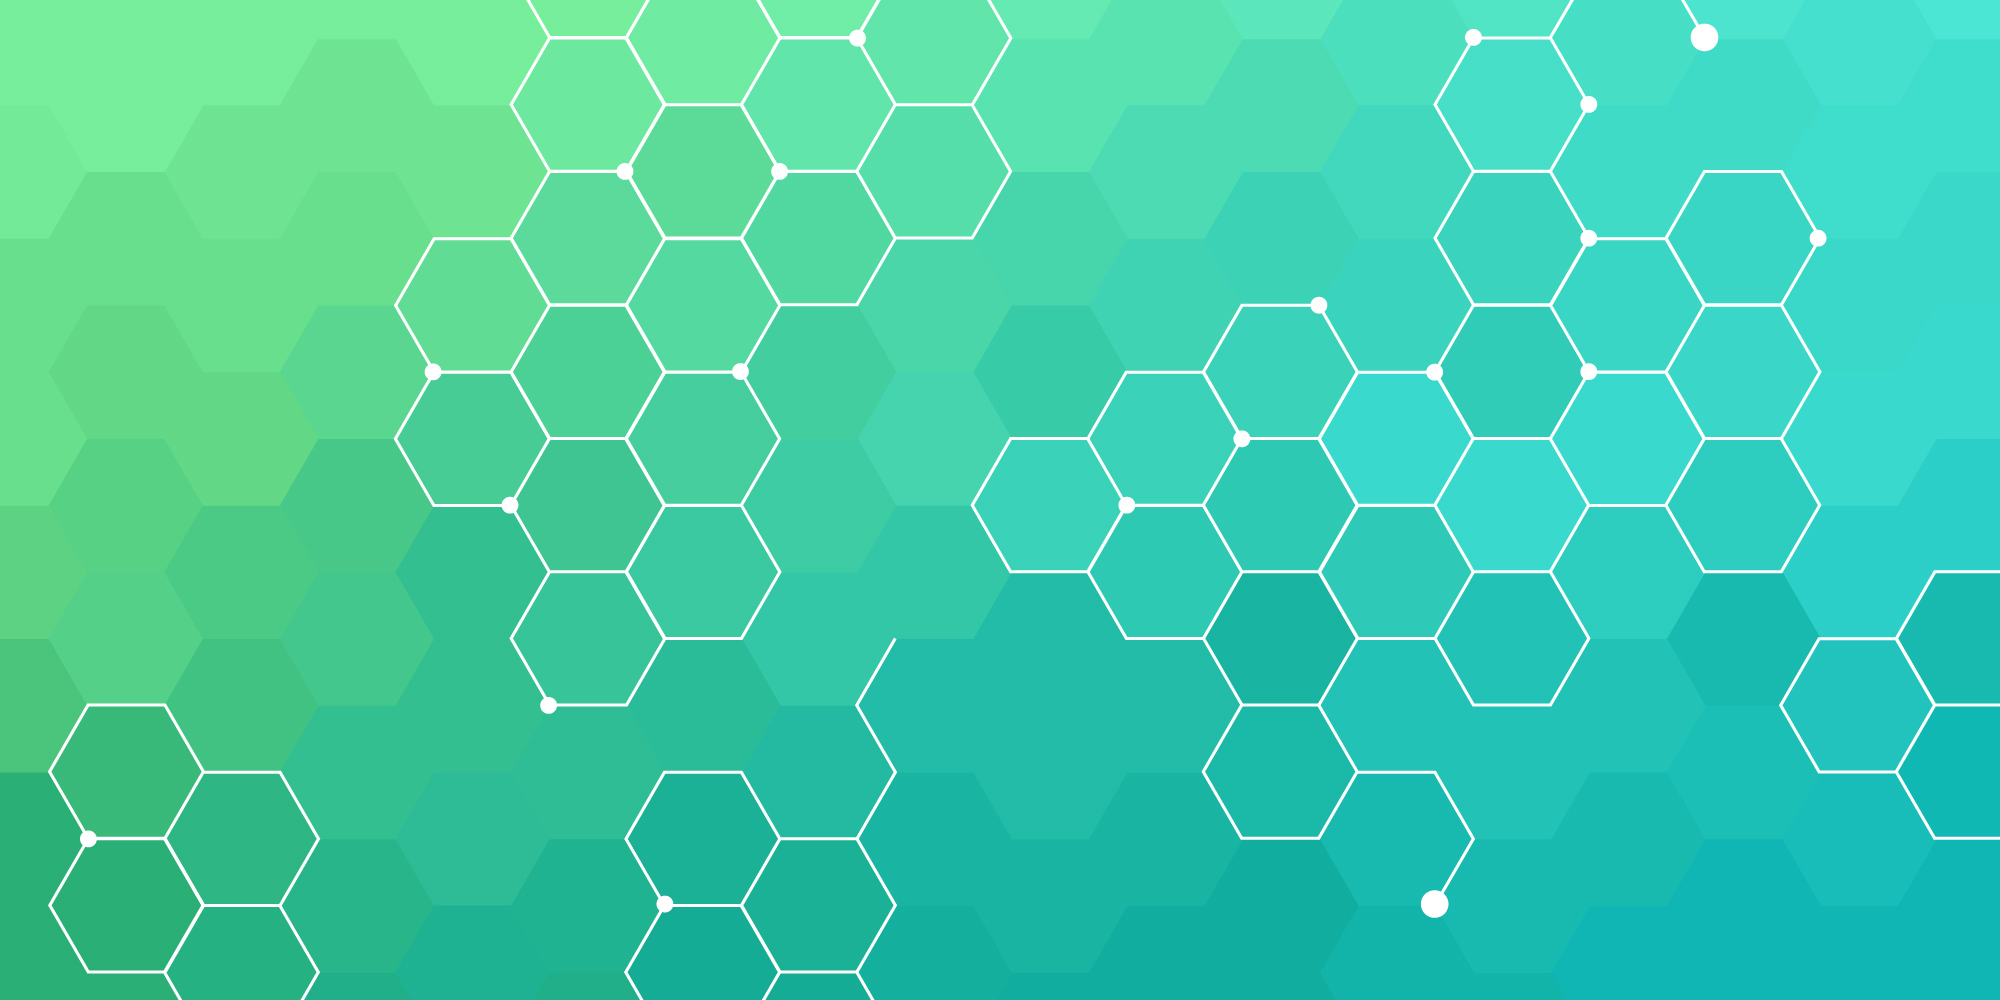 Blue green and teal hexagon pattern